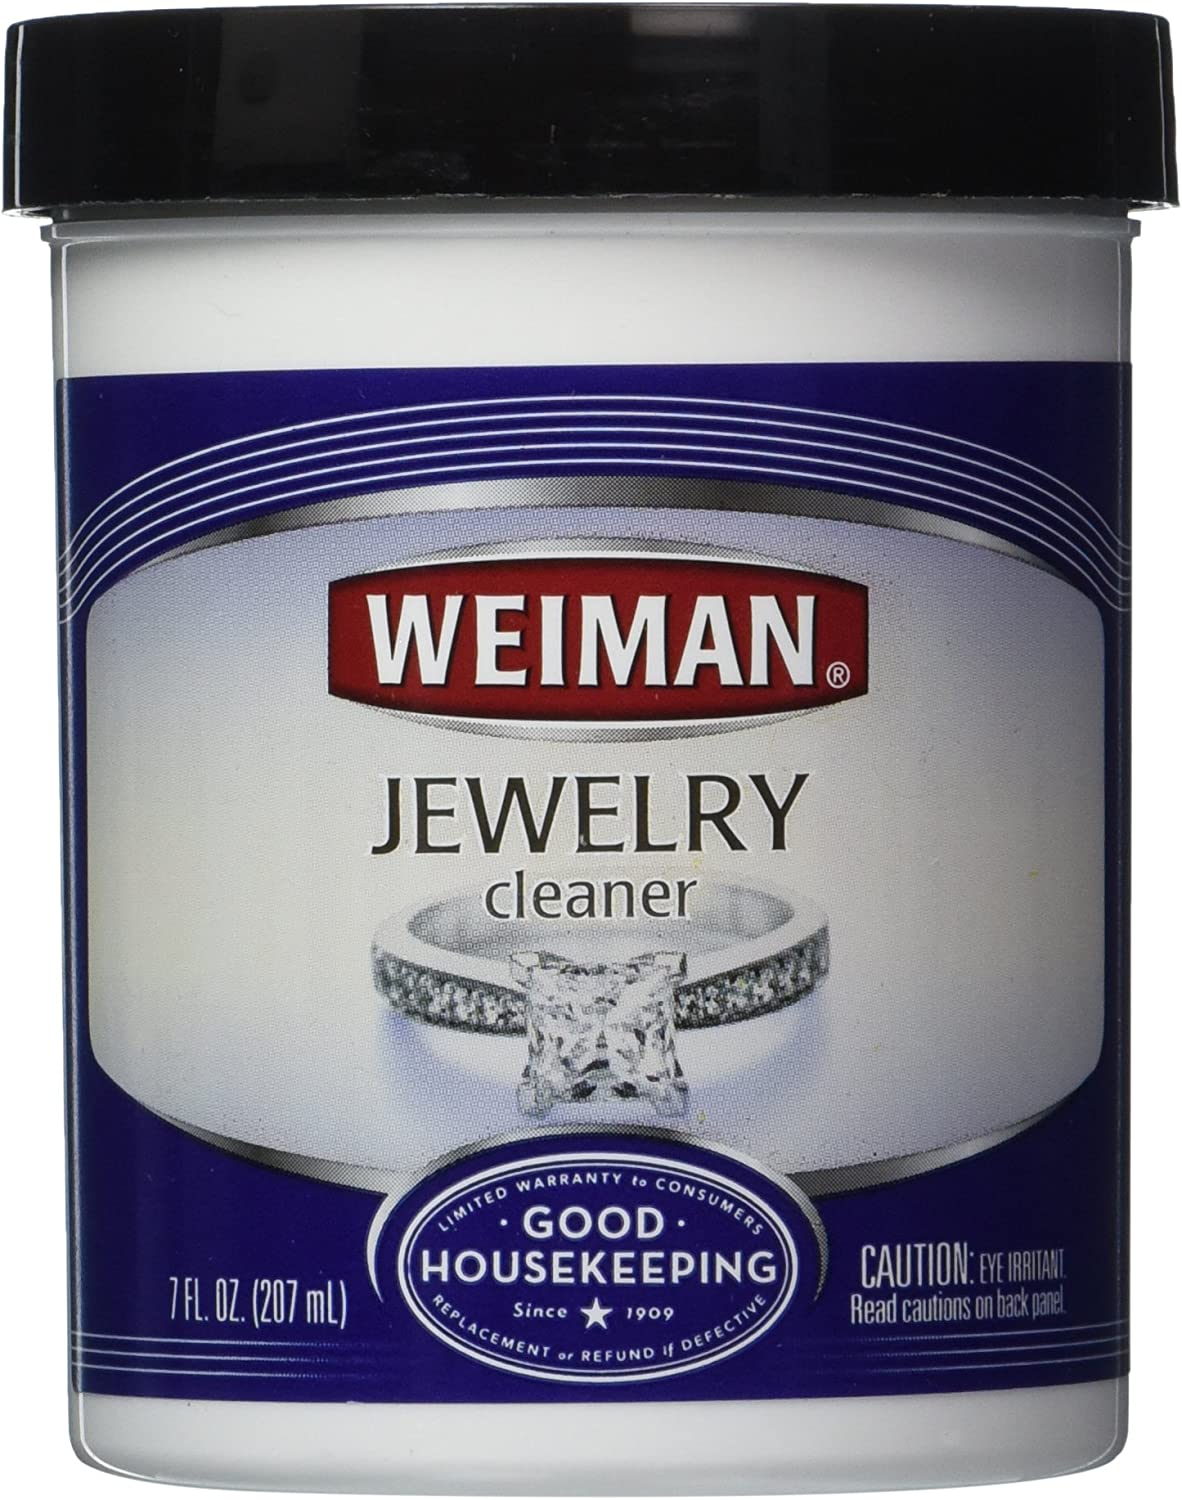 Weiman Jewelry Miami Mall Cleaner 5% OFF - pk oz 2 7